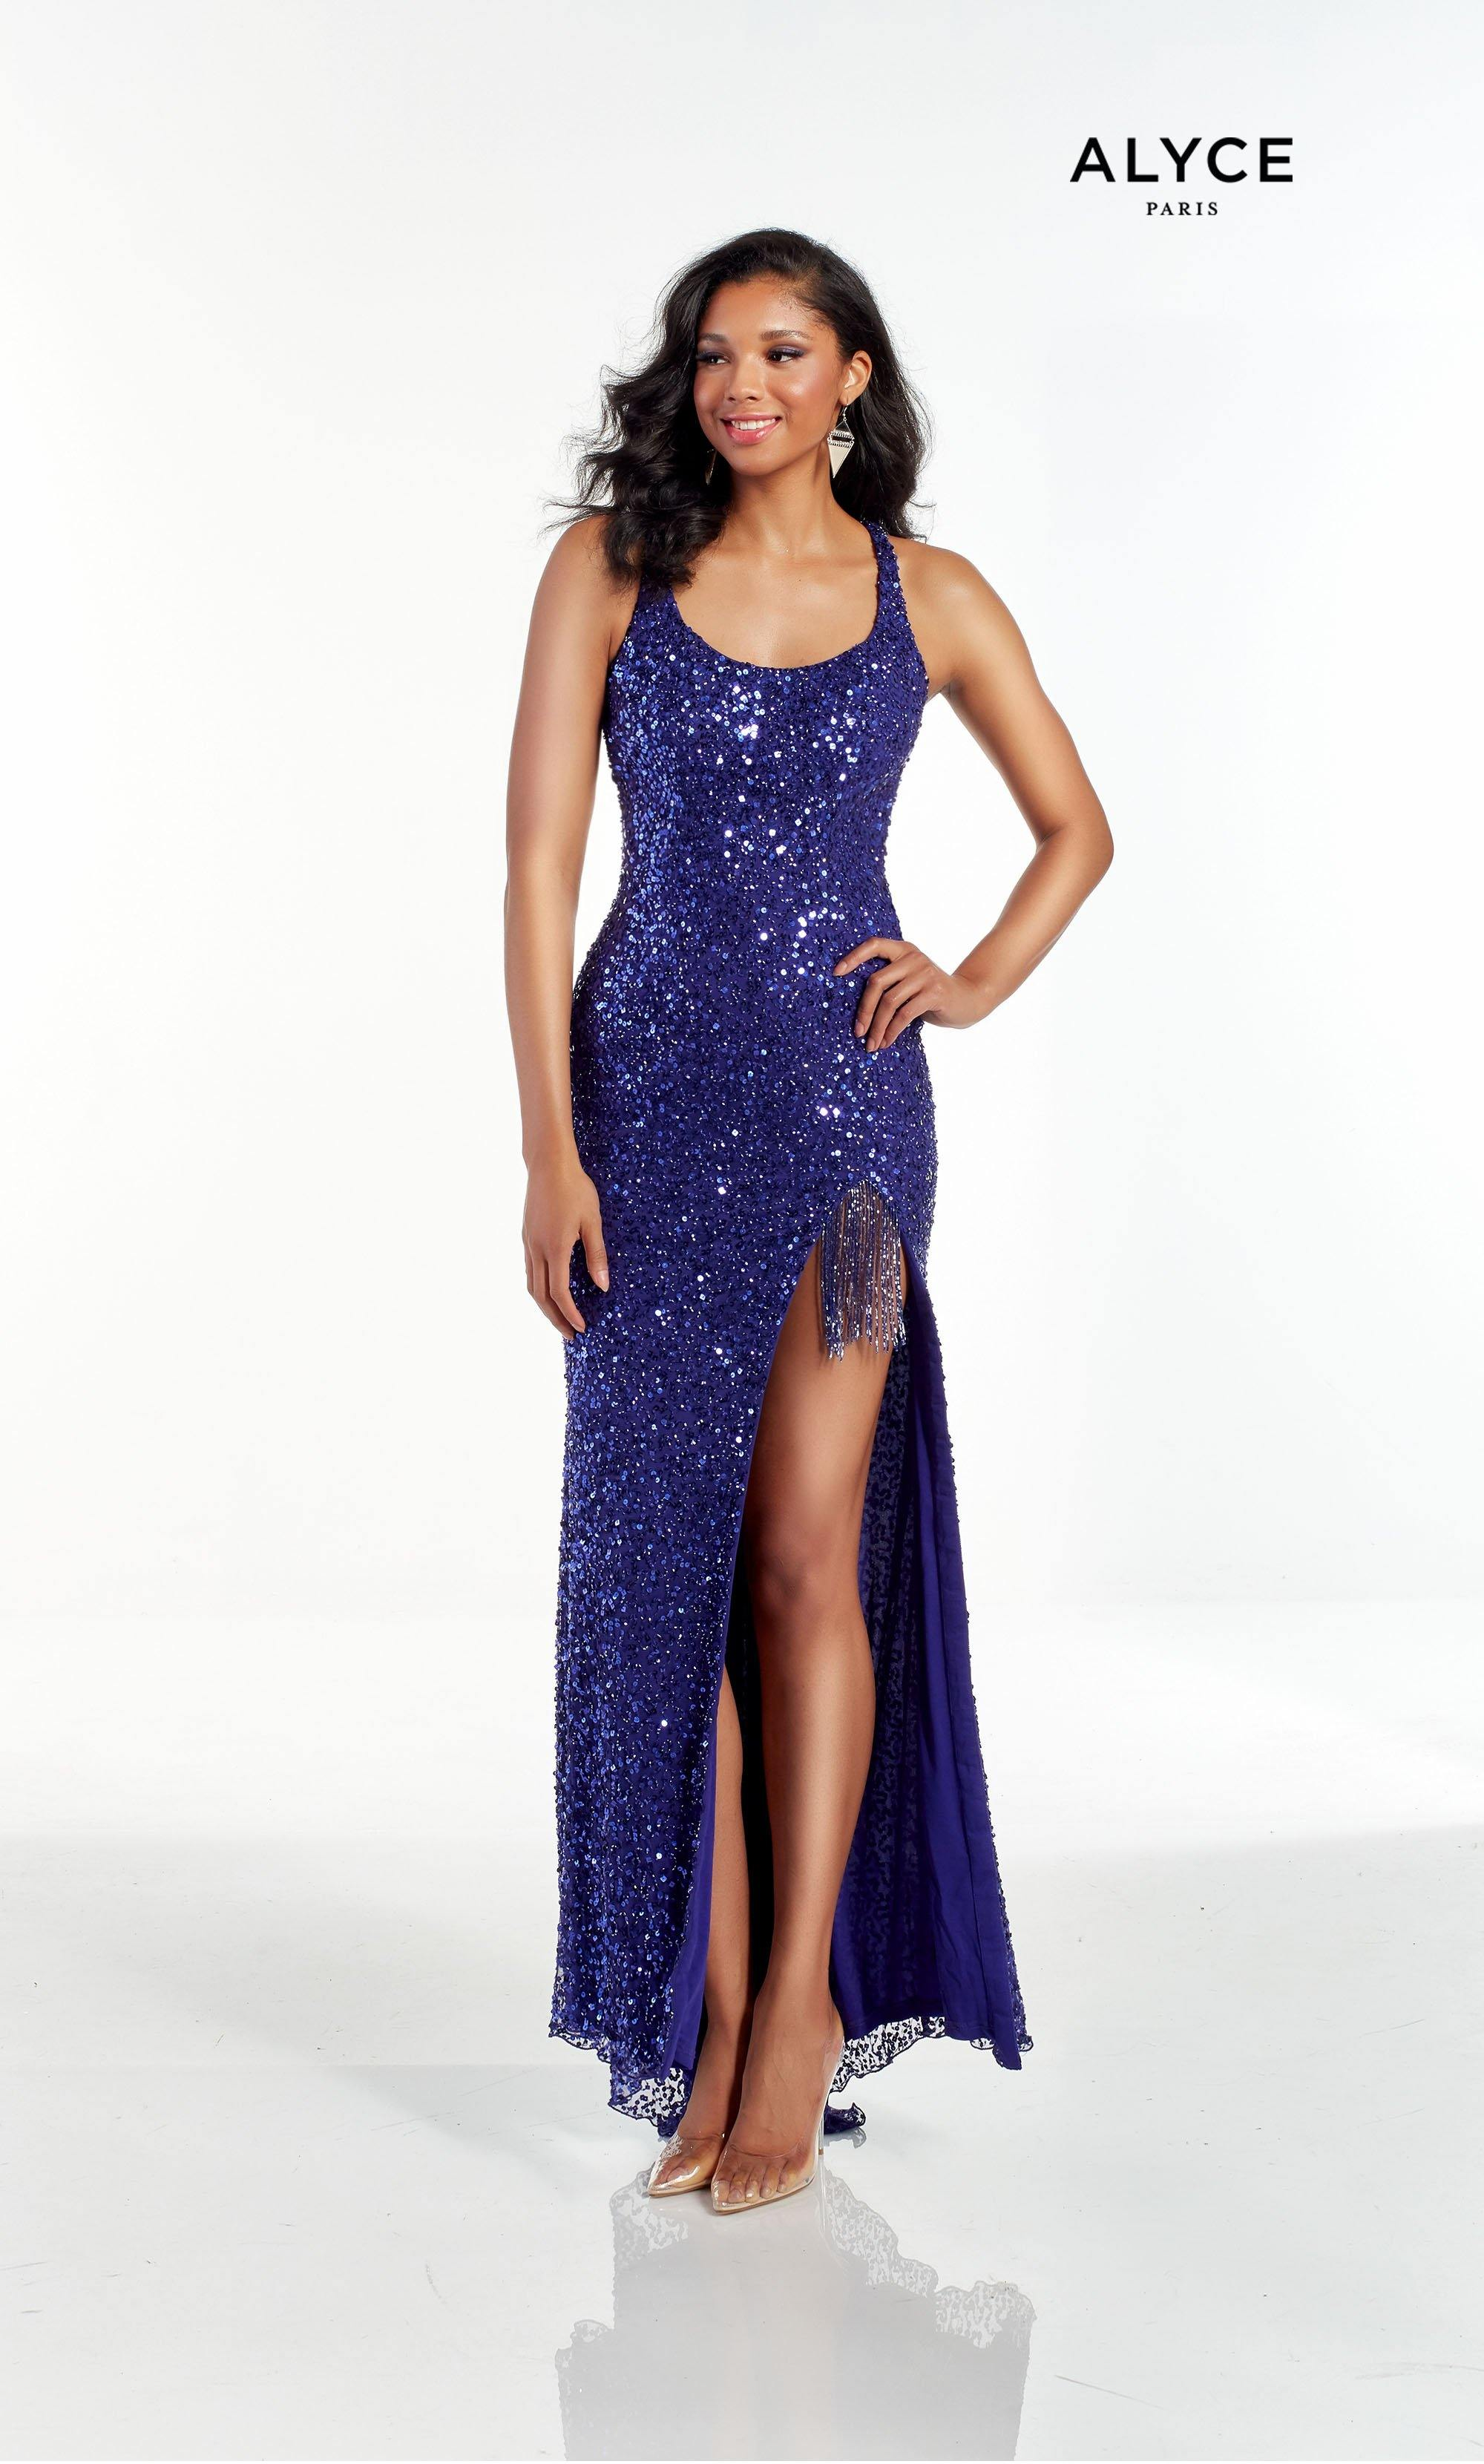 Cobalt Blue hand beaded prom dress with a scoop neck, high slit, and beaded fringe accent